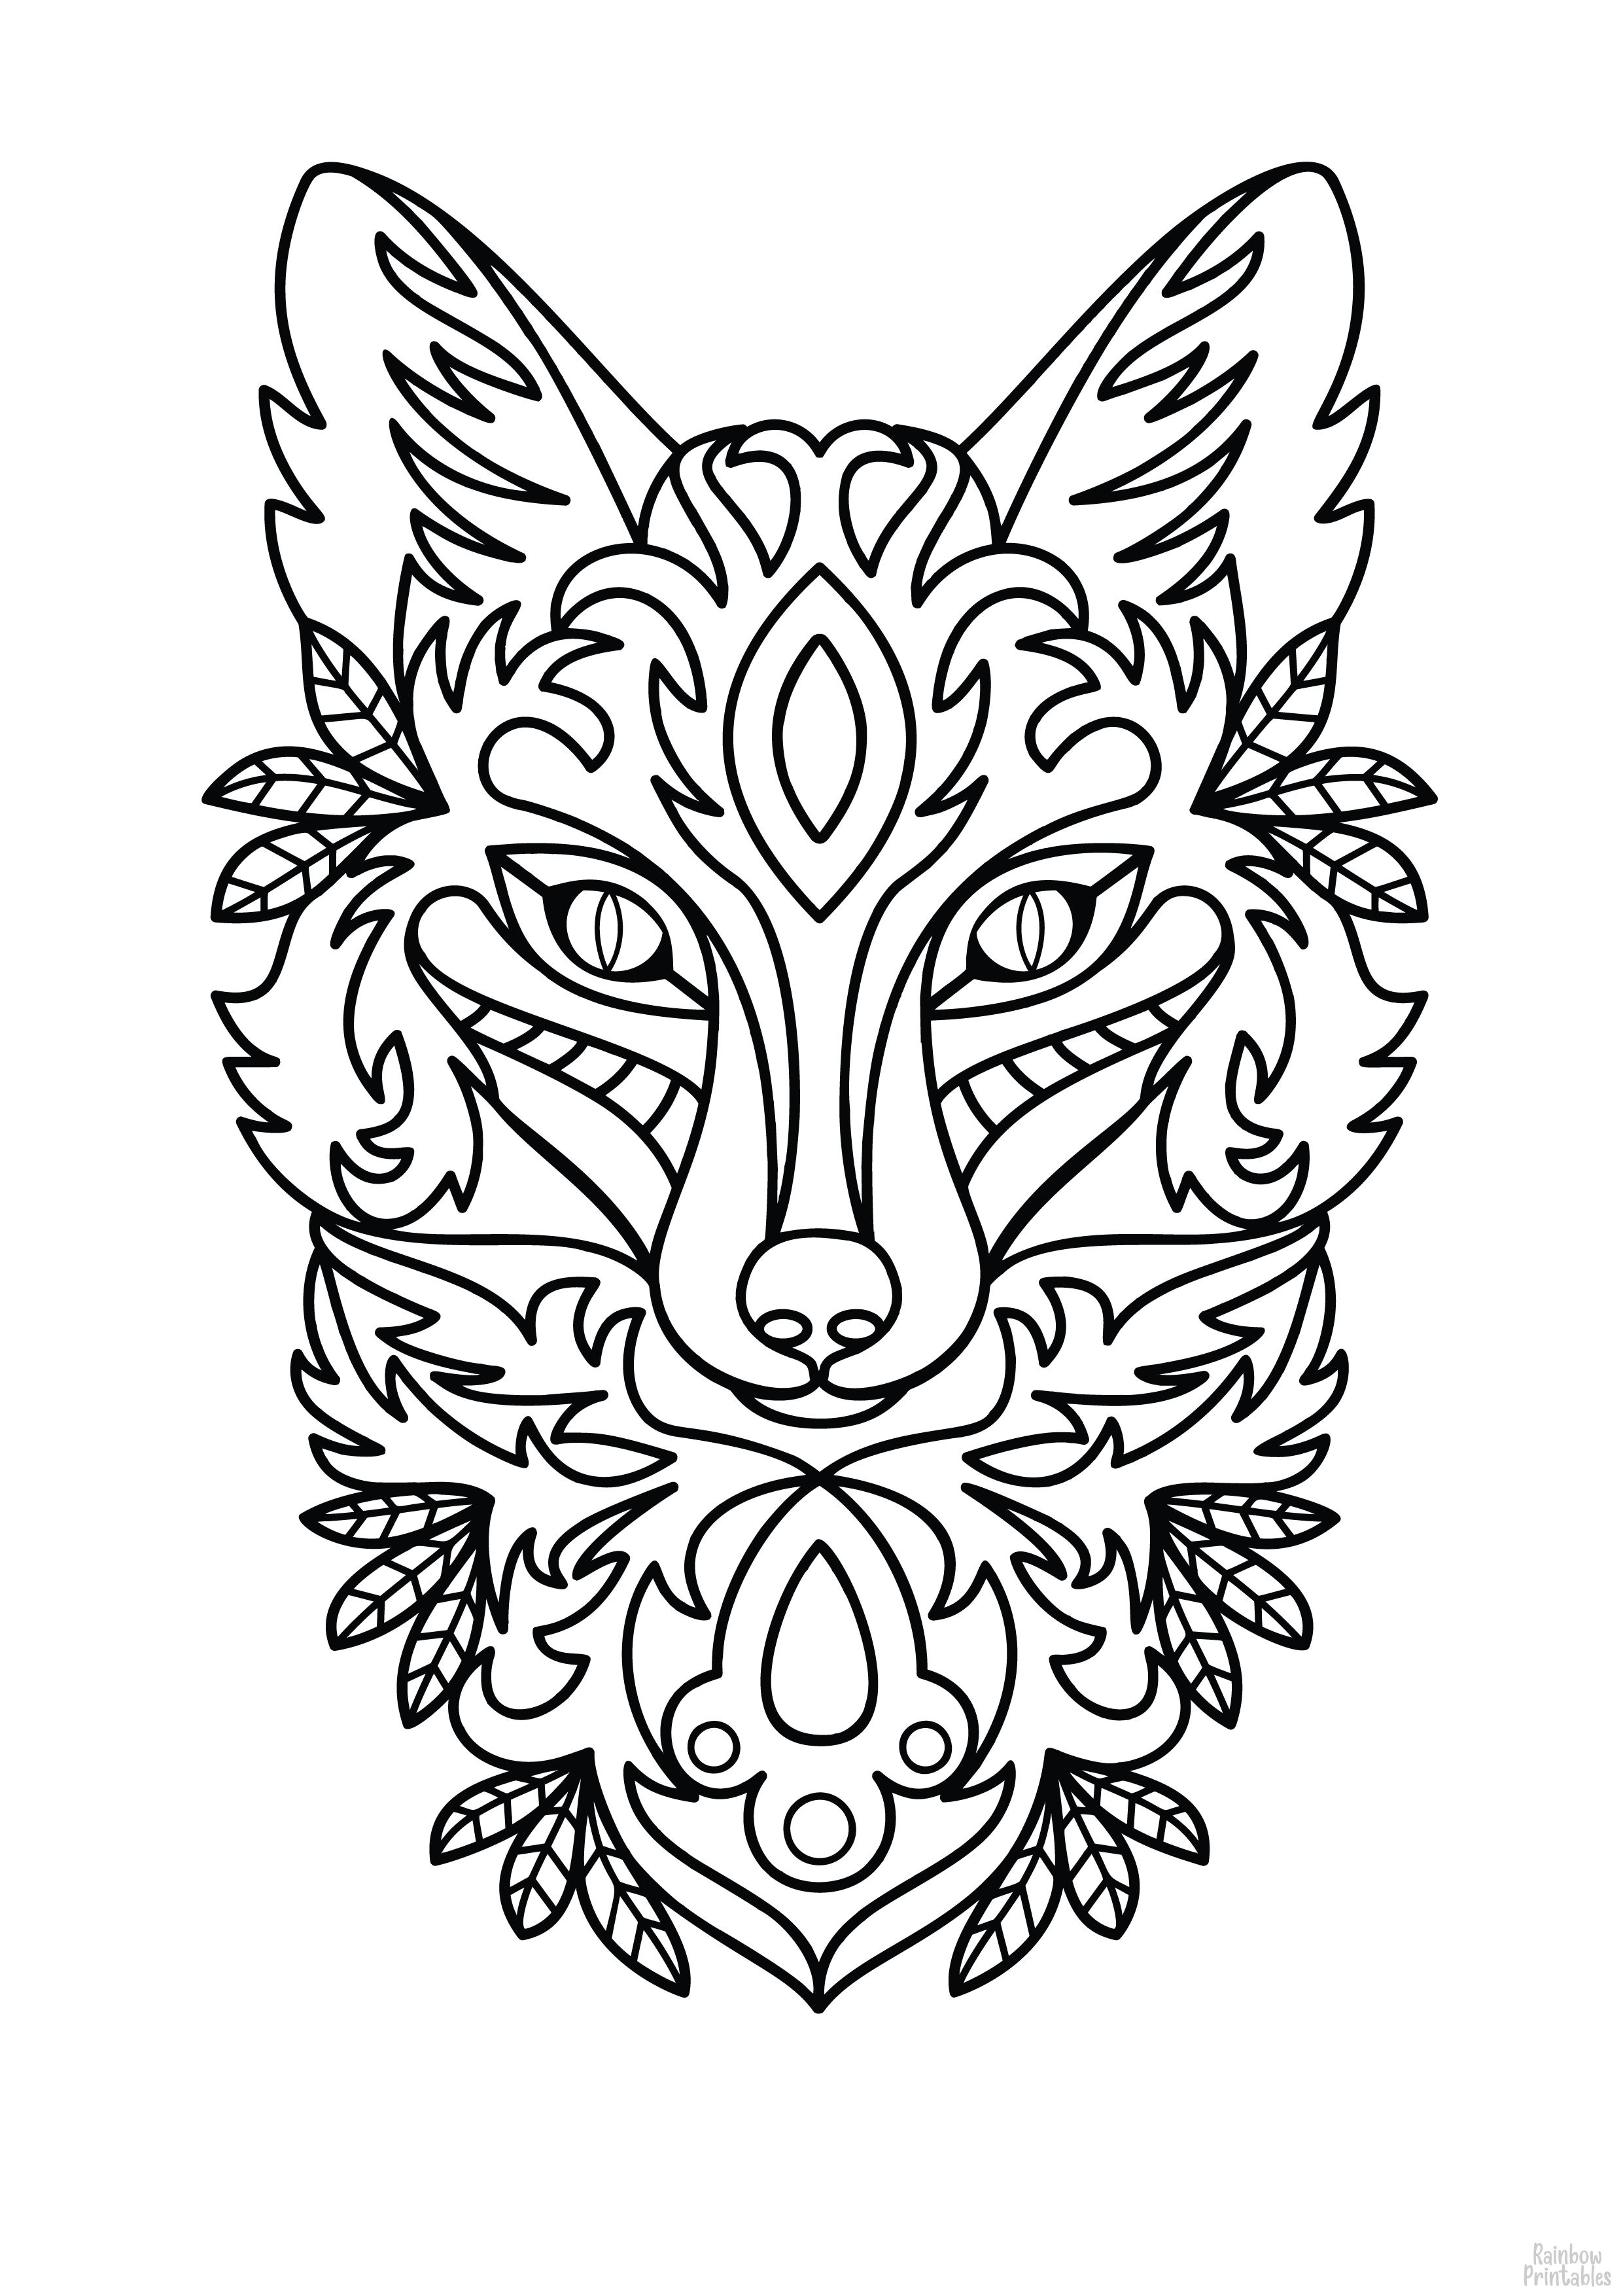 Mandala Set Coloring Pages for Kids Activity Game Boredom Buster 08